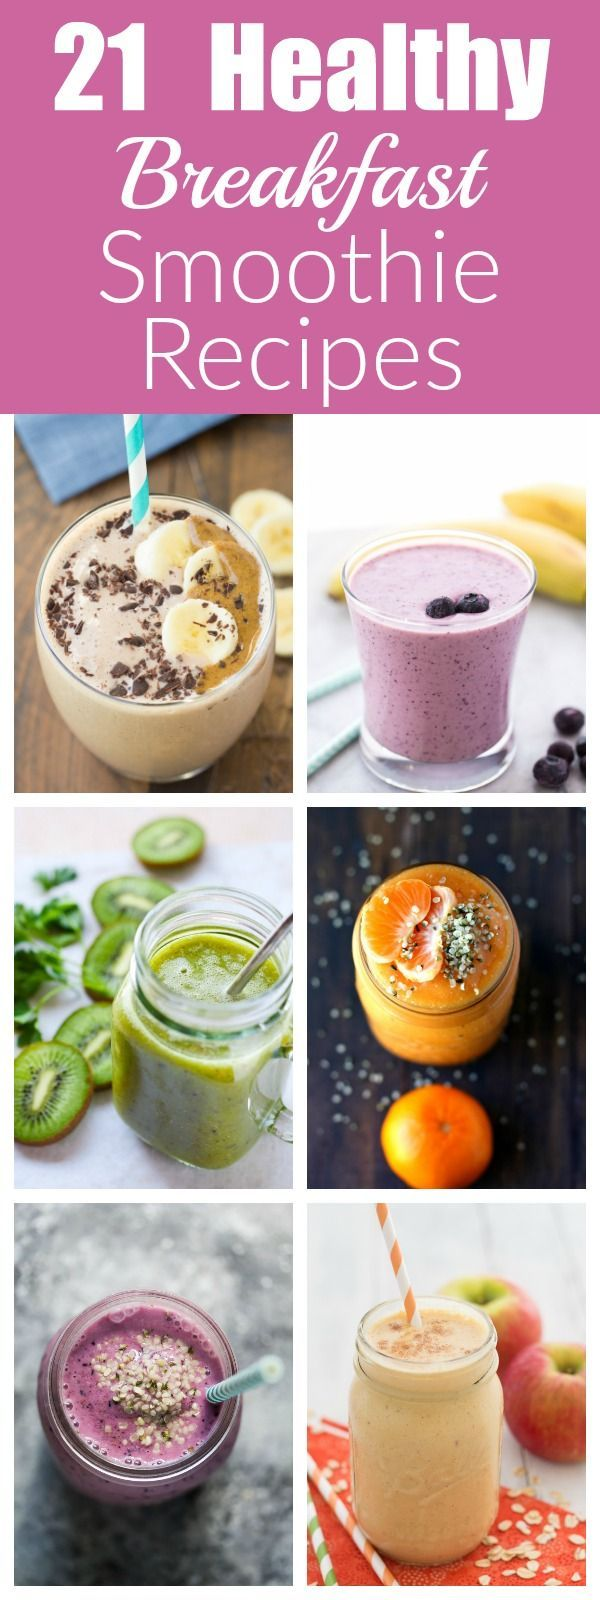 21 HEALTHY Breakfast Smoothie recipes for busy mornings…